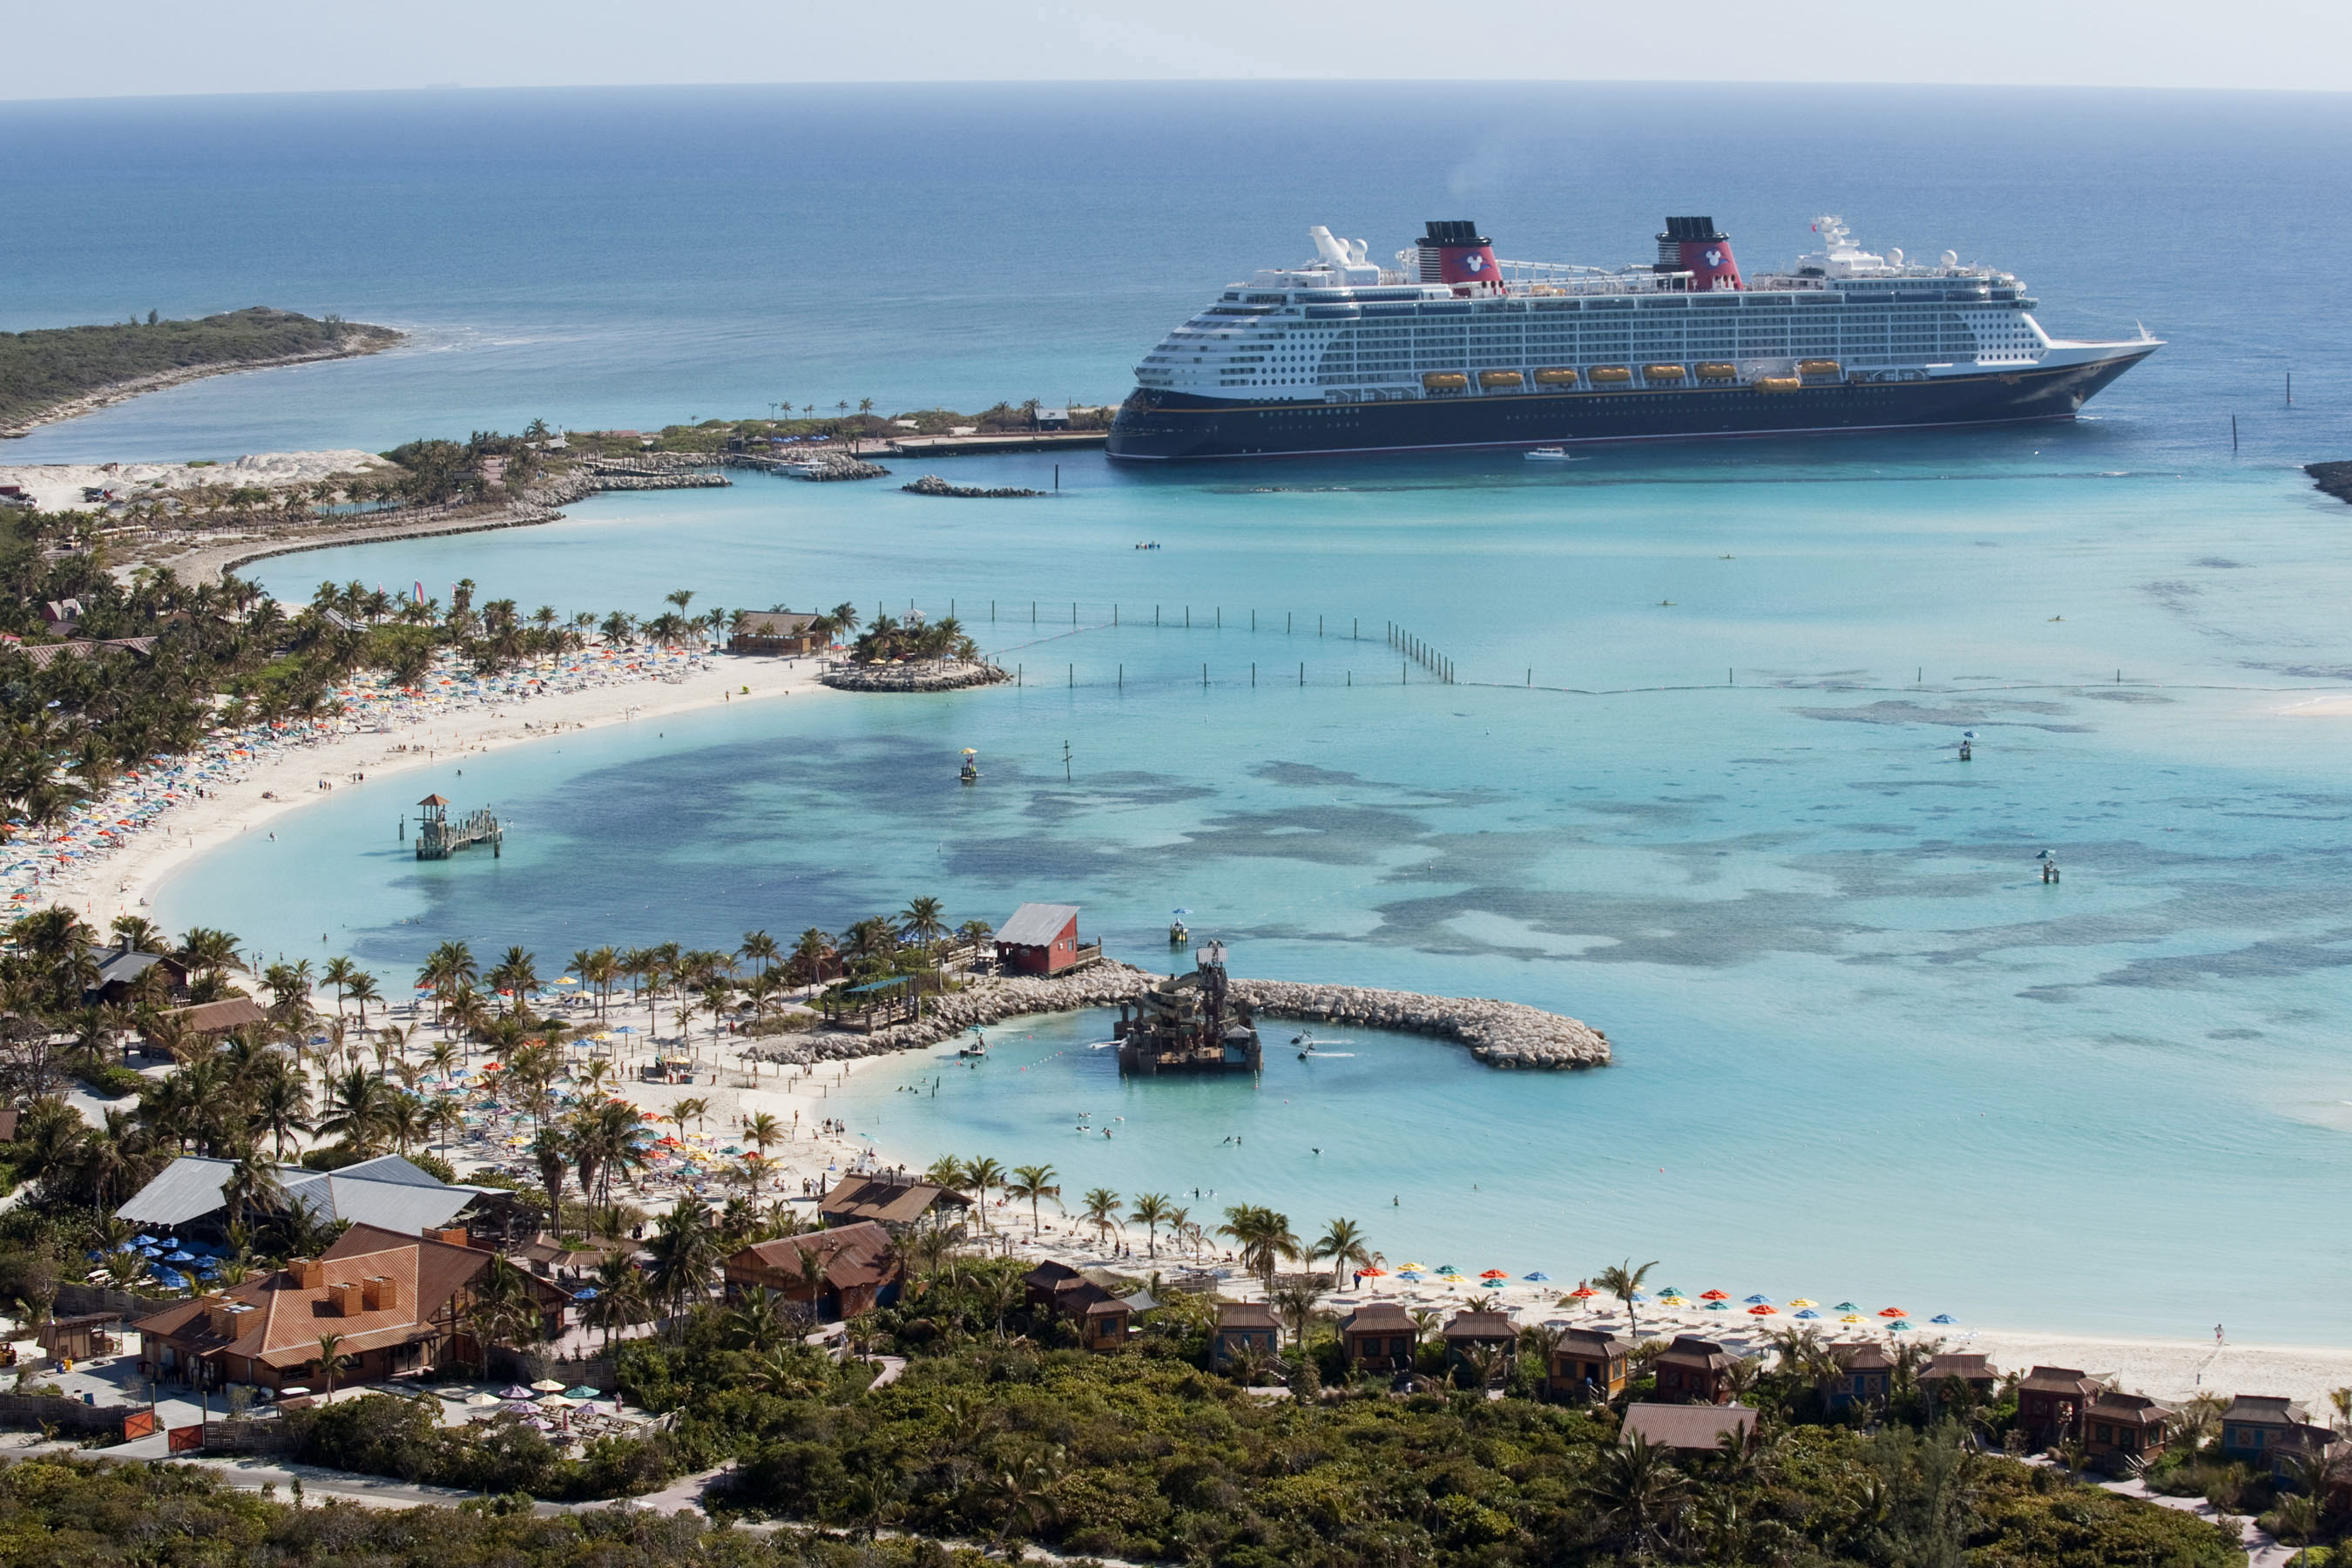 Disney Cruise Line Announces New Summer 2017 Itineraries